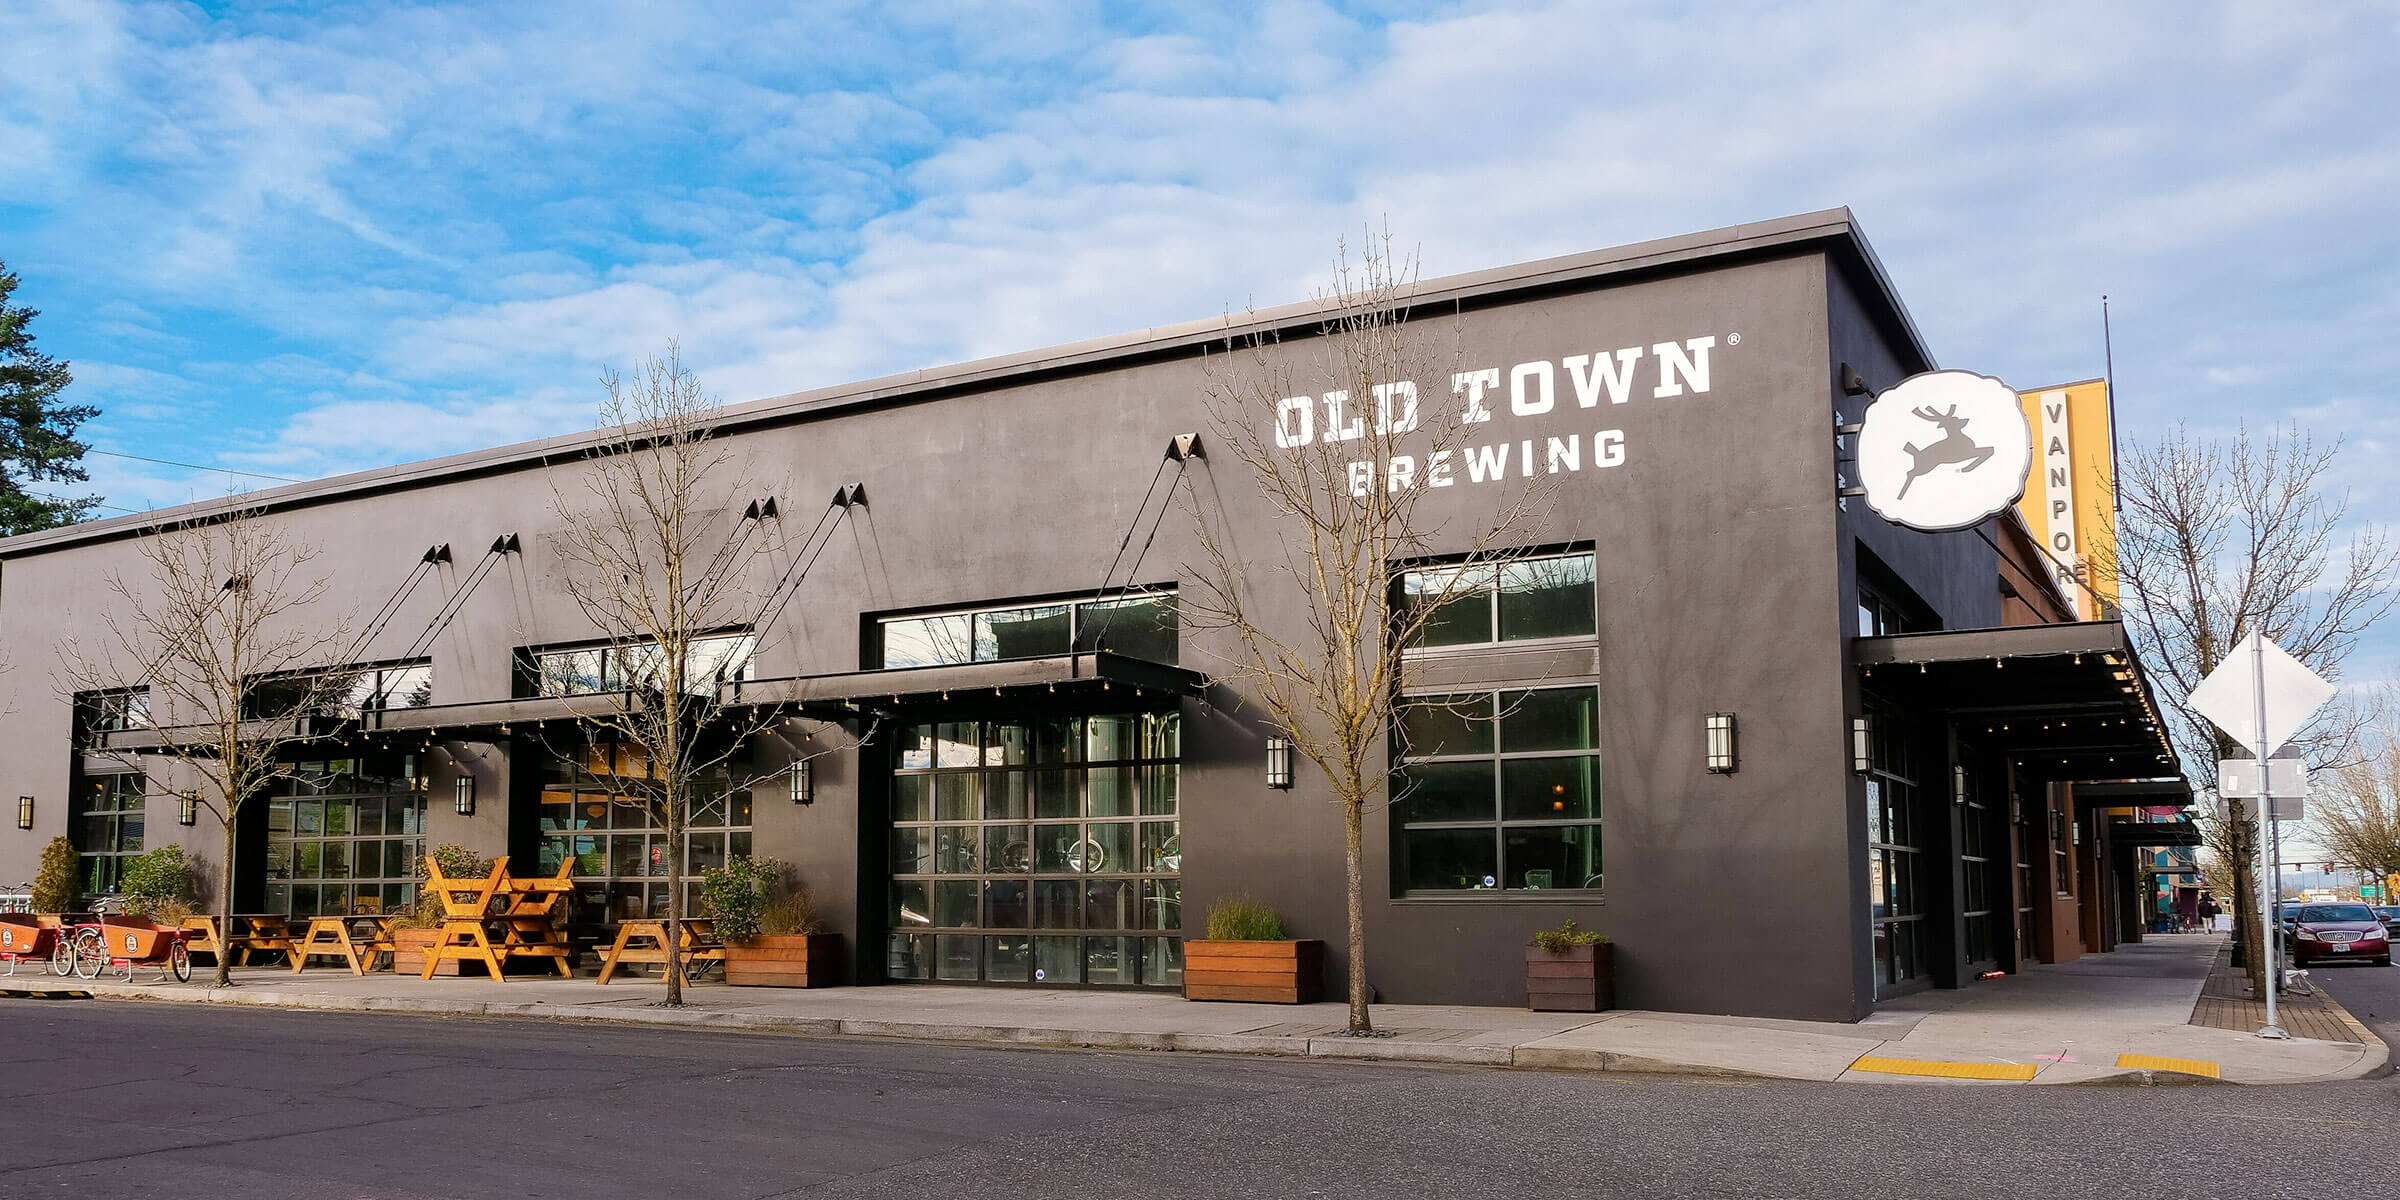 Outside the Old Town Brewing Northeast Brewery location in Portland, Oregon